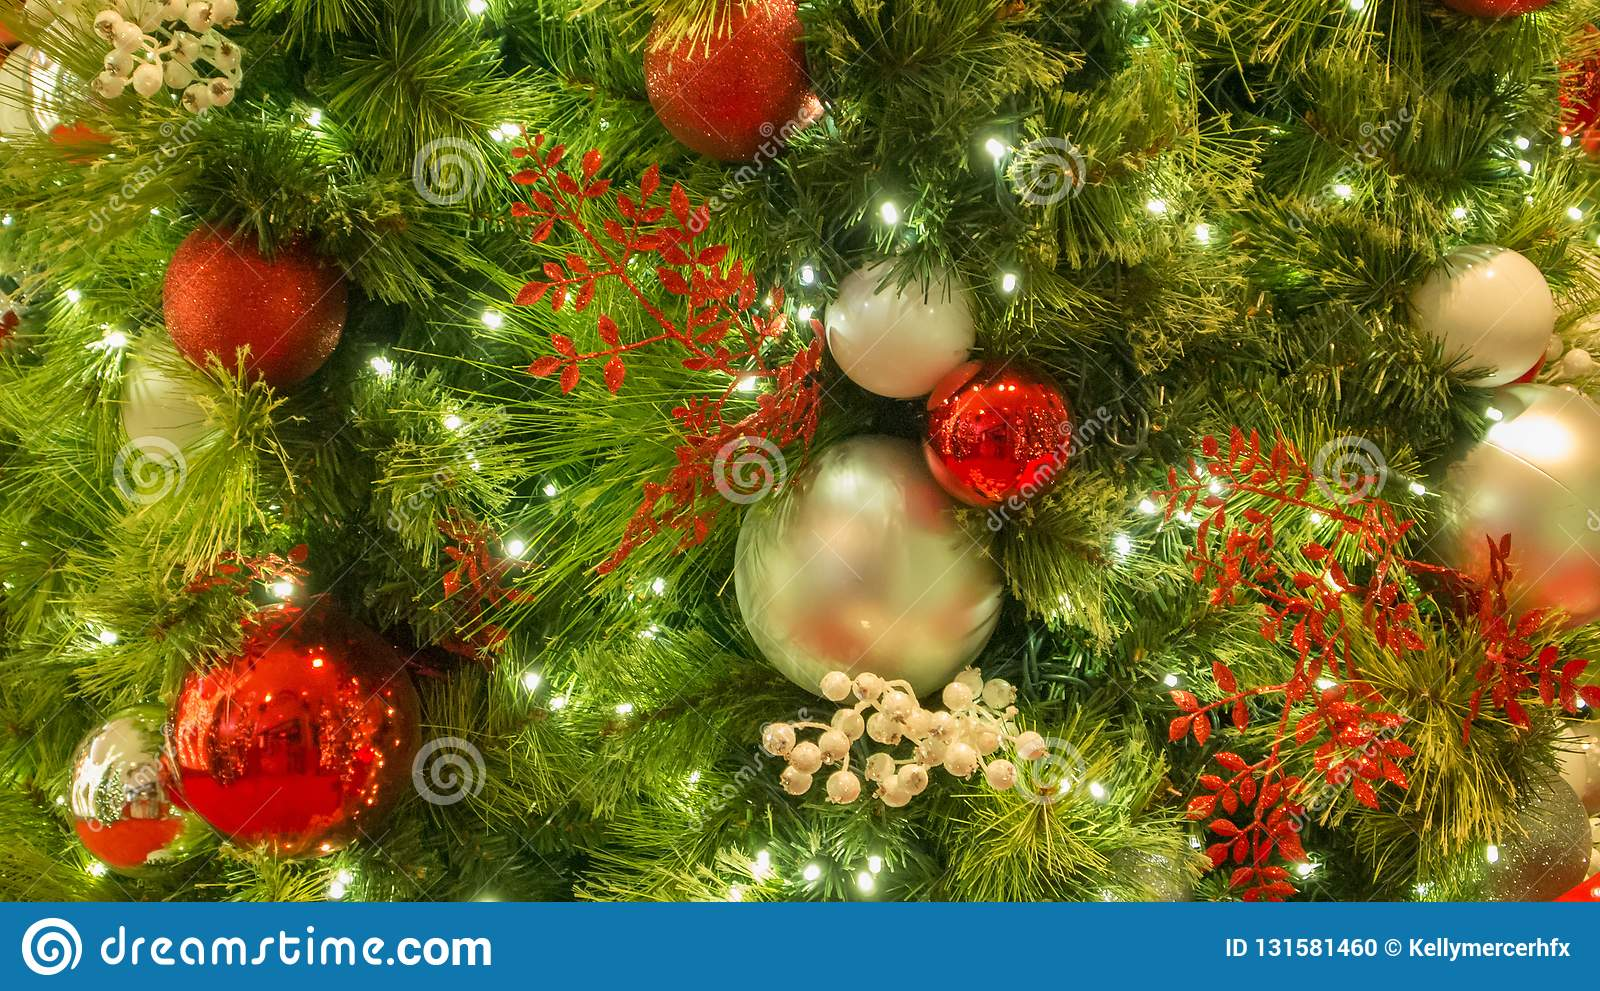 35 669 Christmas Tree Decorations Red Gold Photos Free Royalty Free Stock Photos From Dreamstime